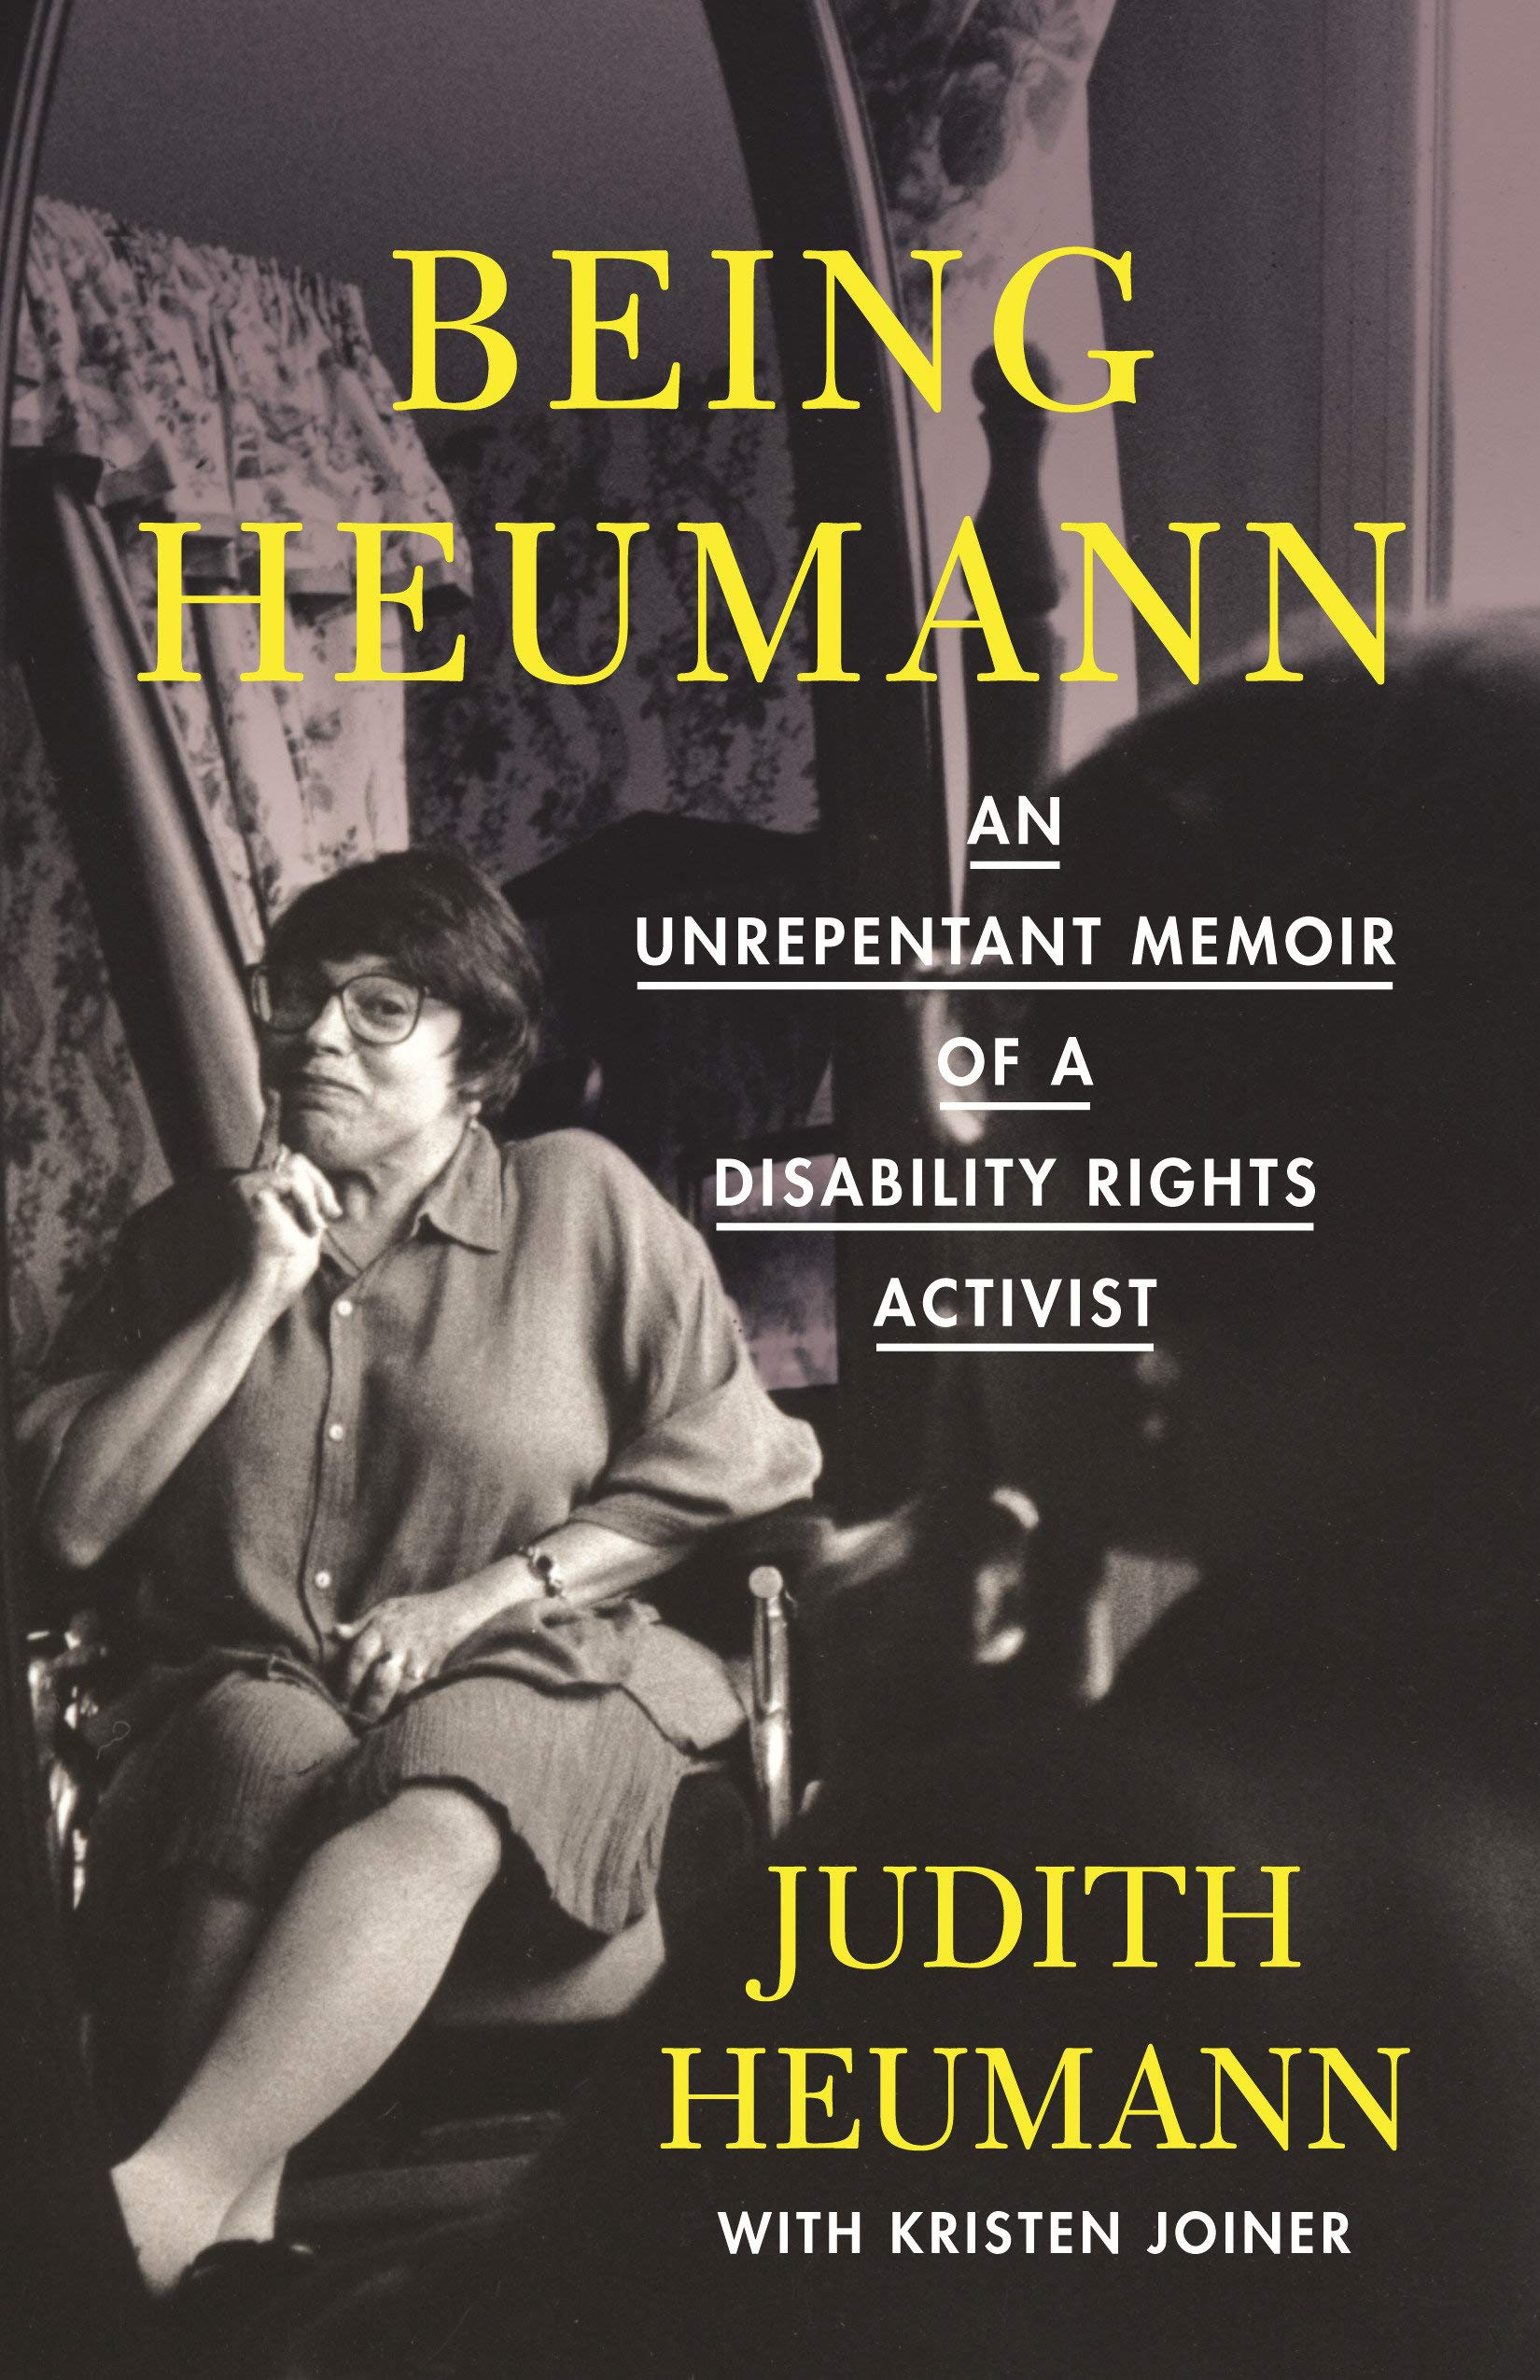 """The cover of the hardcover version """"Being Heumann by Judy Heumann and Kristen Joiner. A black and white picture of Judy with yellow tex reading """"Being Heumann: An Unrepentent Memoir of a Disabillity Rights Activist"""""""